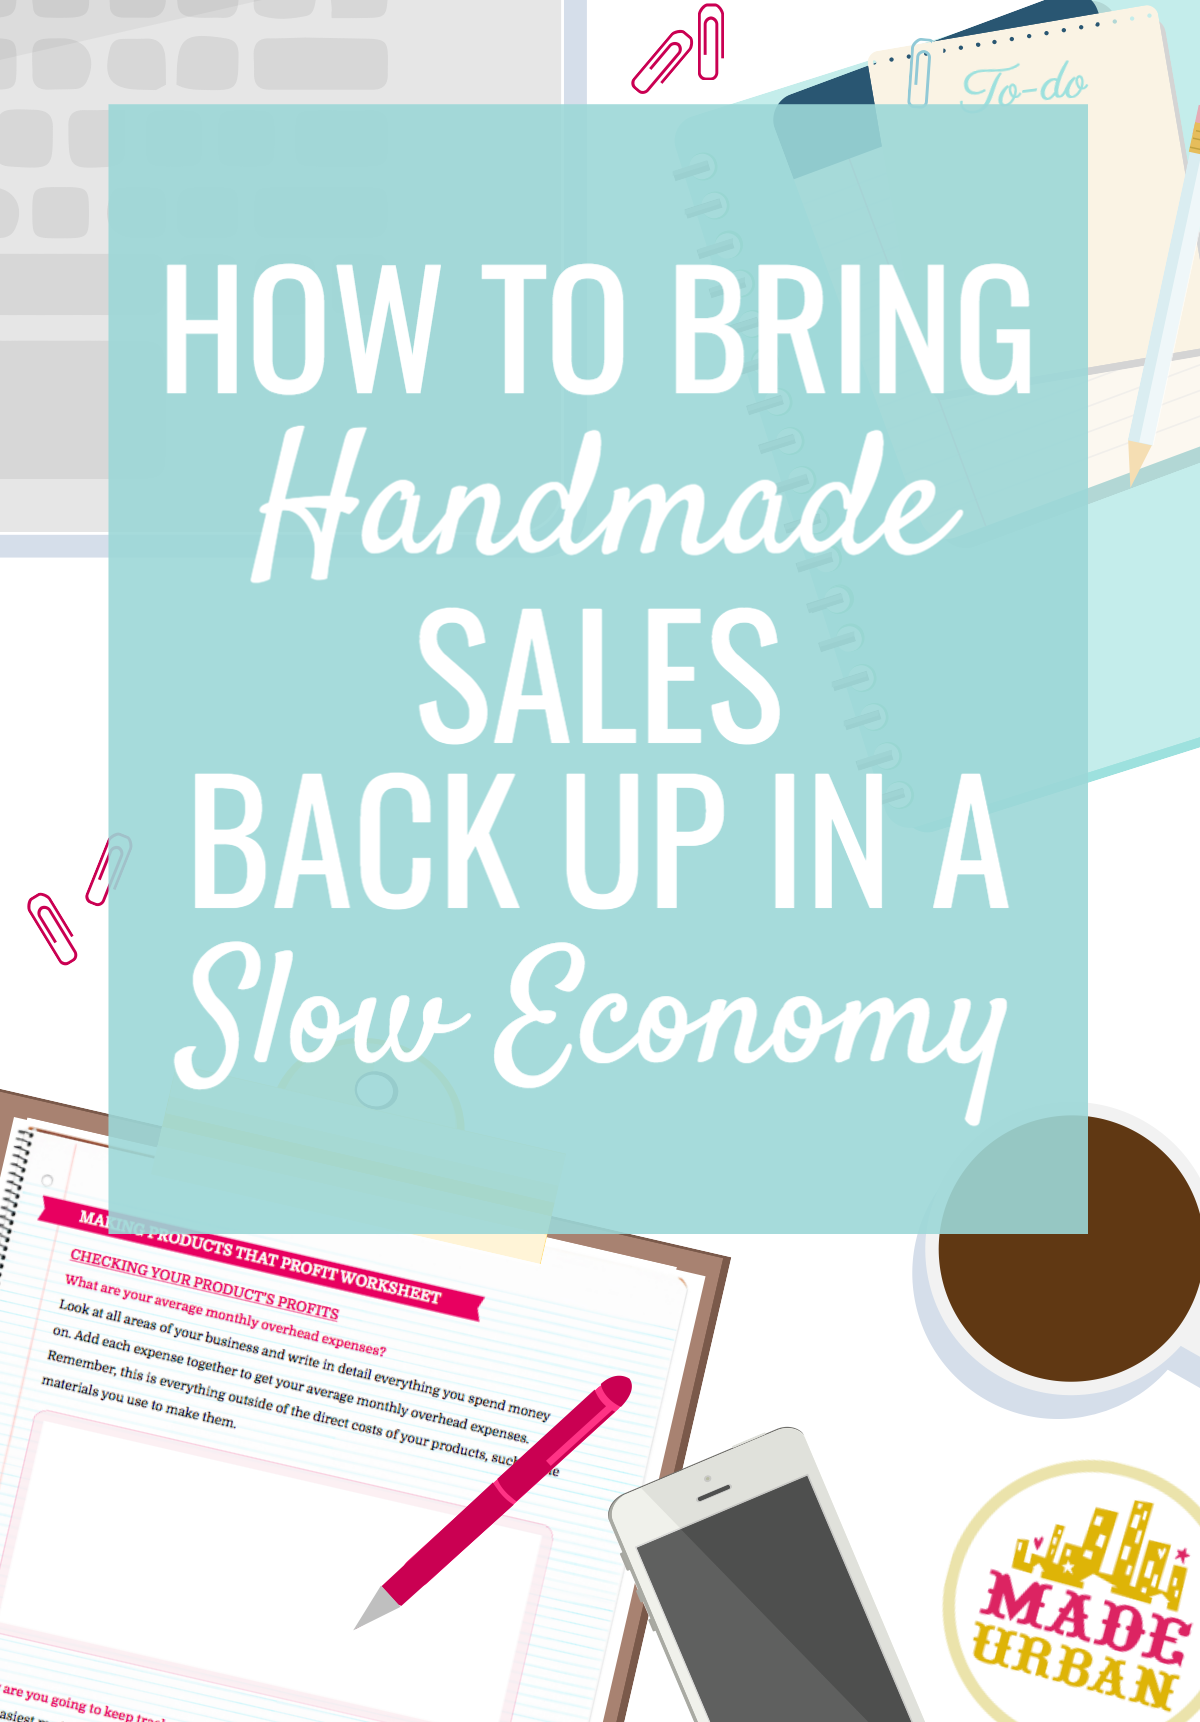 A slow economy can mean fewer sales. But you can't just do more of what you're currently doing in attempt to bring sales back up. Change your tactics. Here's how...